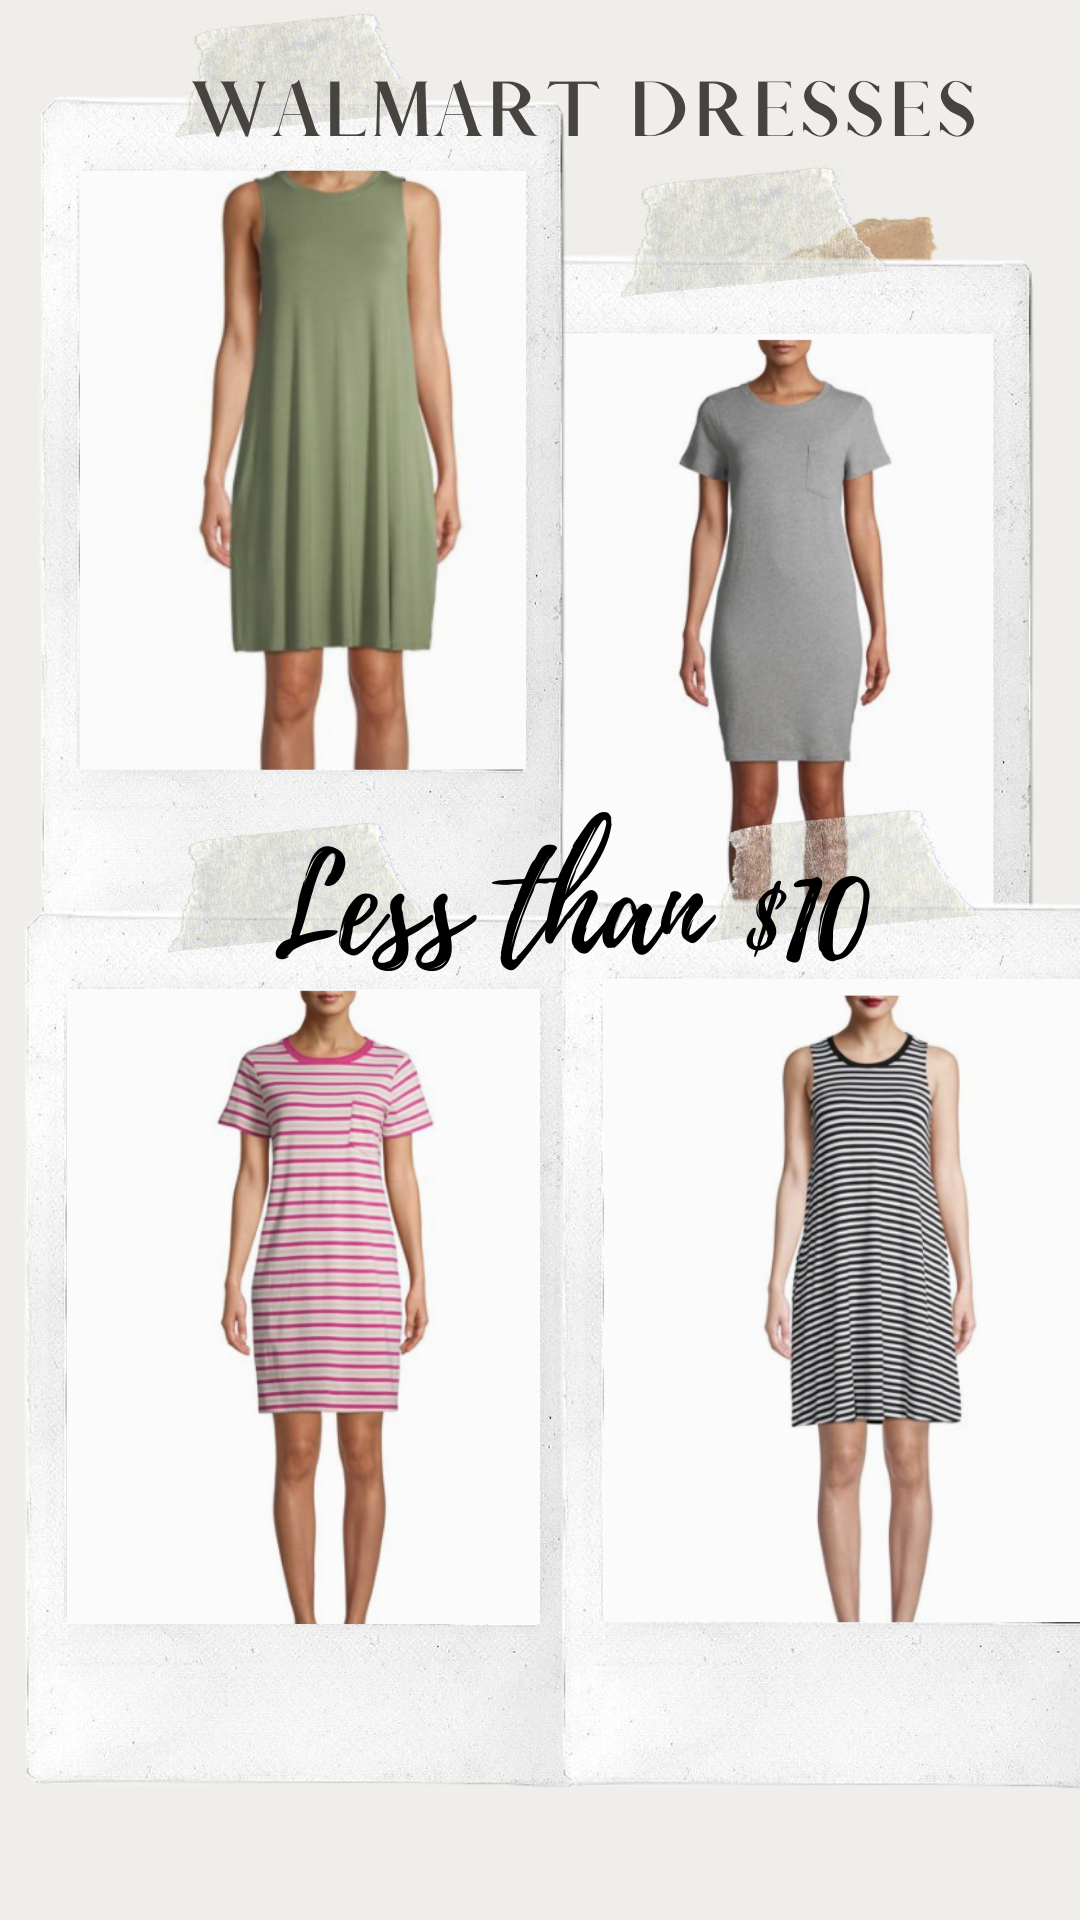 Walmart Dress less than $10 | Walmart Fashion | Basic dresses | T-shirt dresses